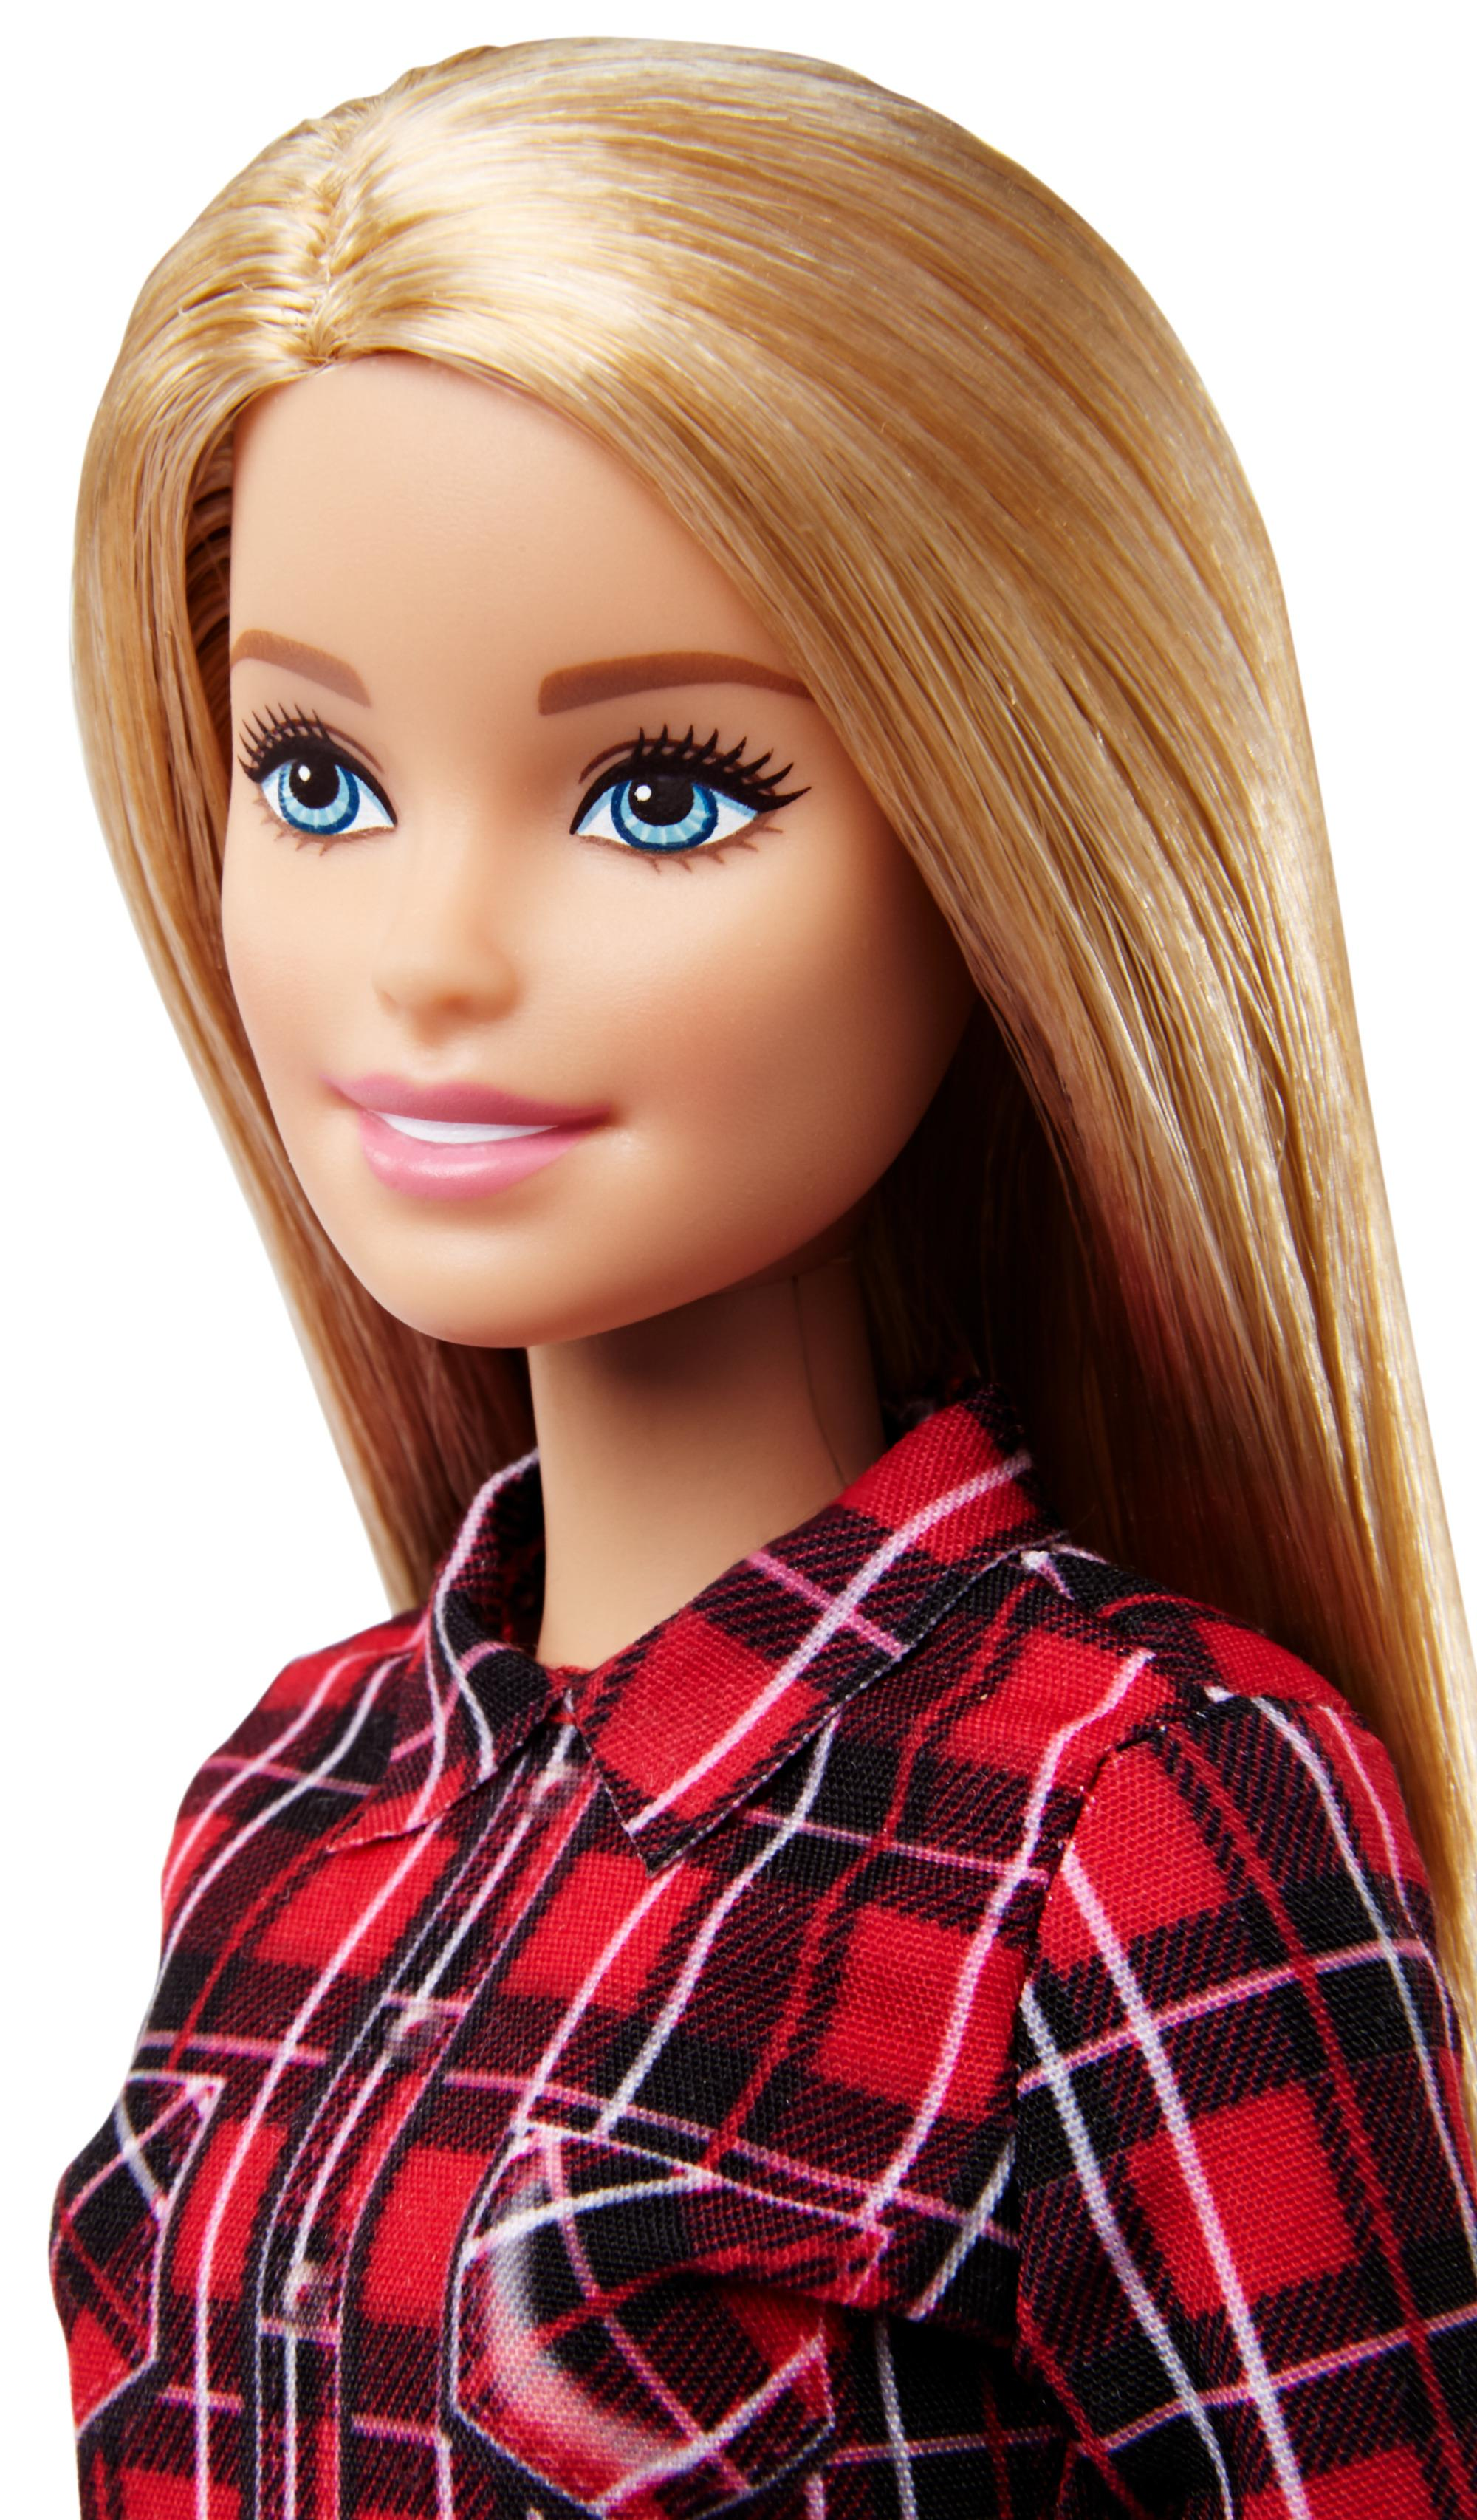 Amazon.com: Barbie Sis Campfire Doll, Blonde: Toys & Games